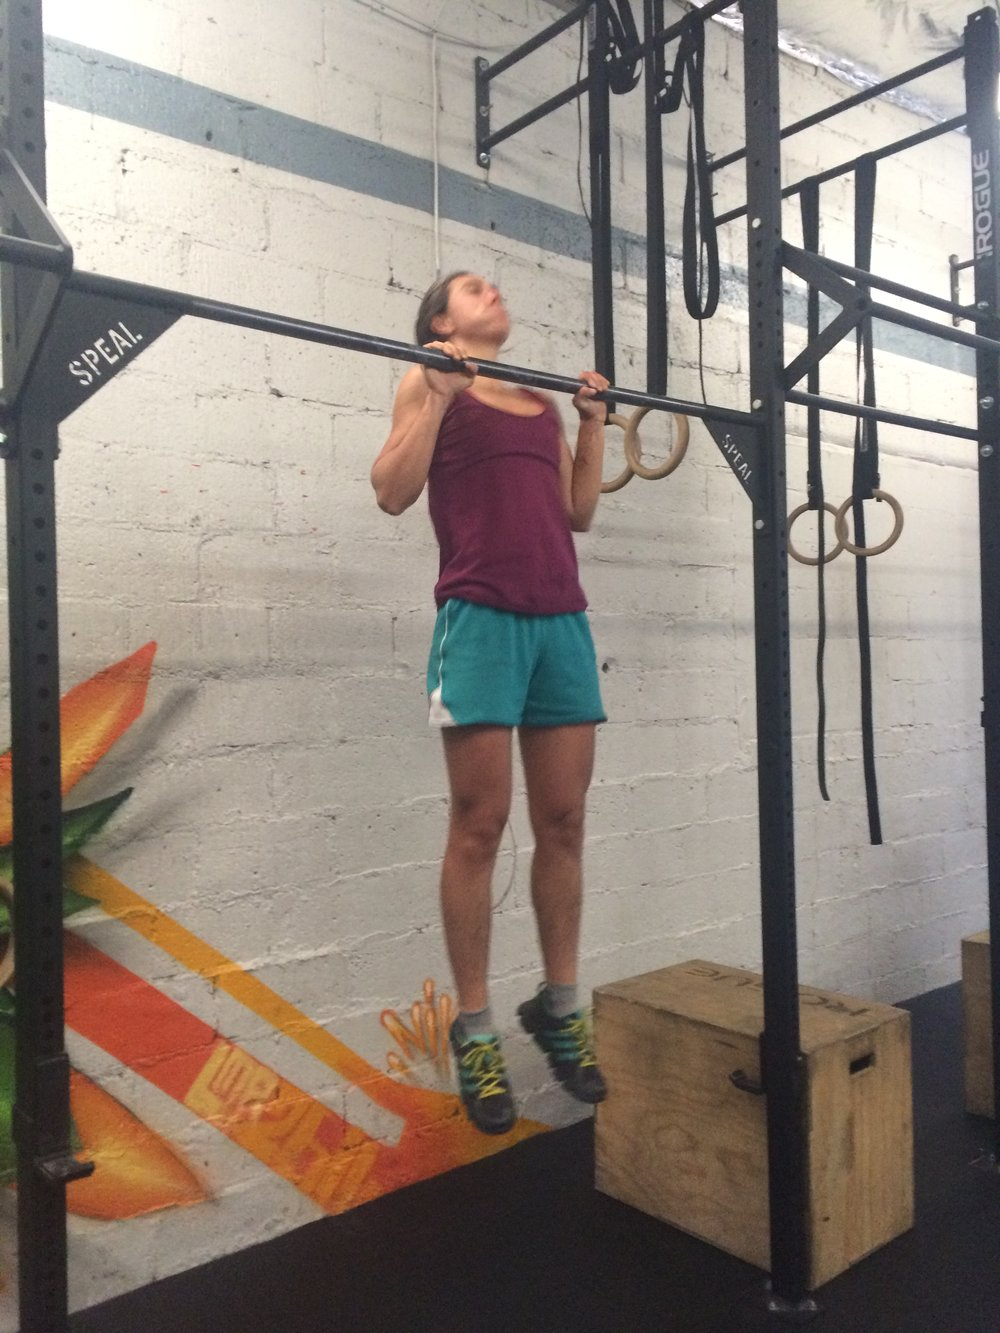 The pic does not accurately detail the true chest to bar pull ups that Mia threw down during this workout. Her accomplishments are a testament to consistency and hard work.